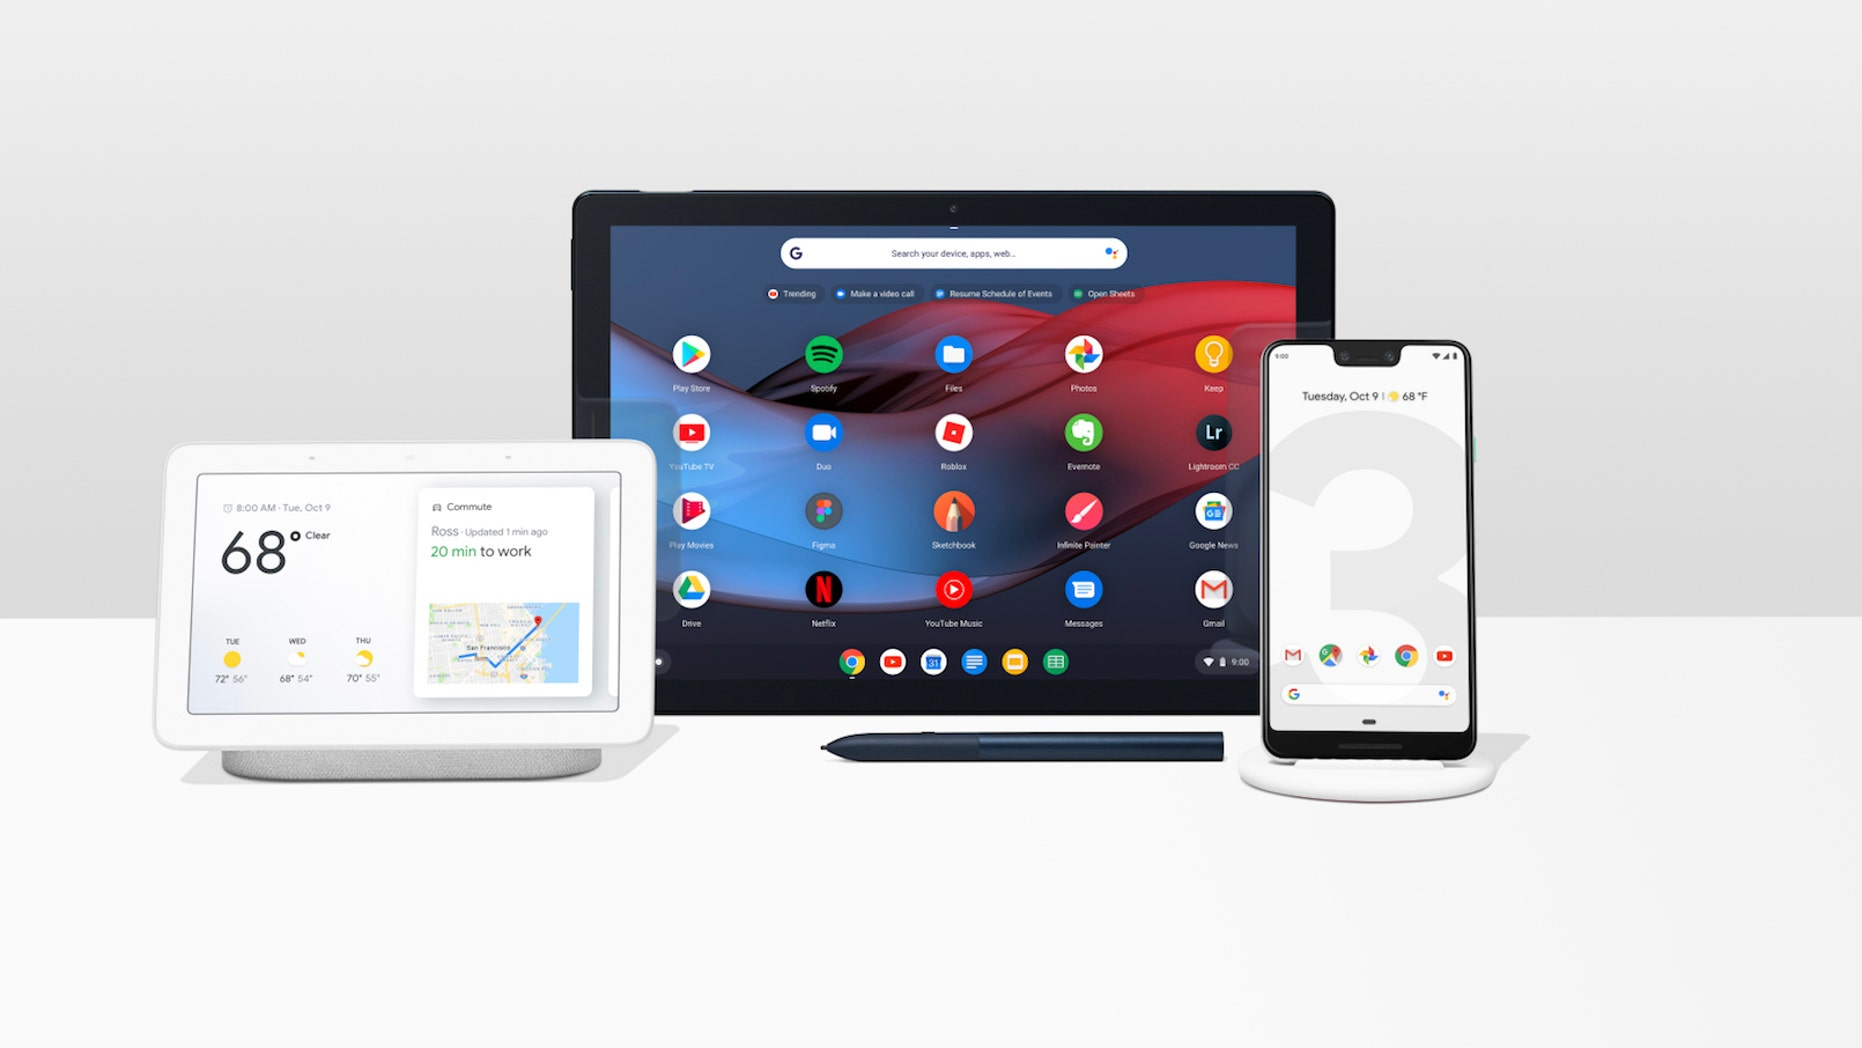 From left - the Google HomeHub, Pixel Slate tablet and Pixel 3 XL phone.